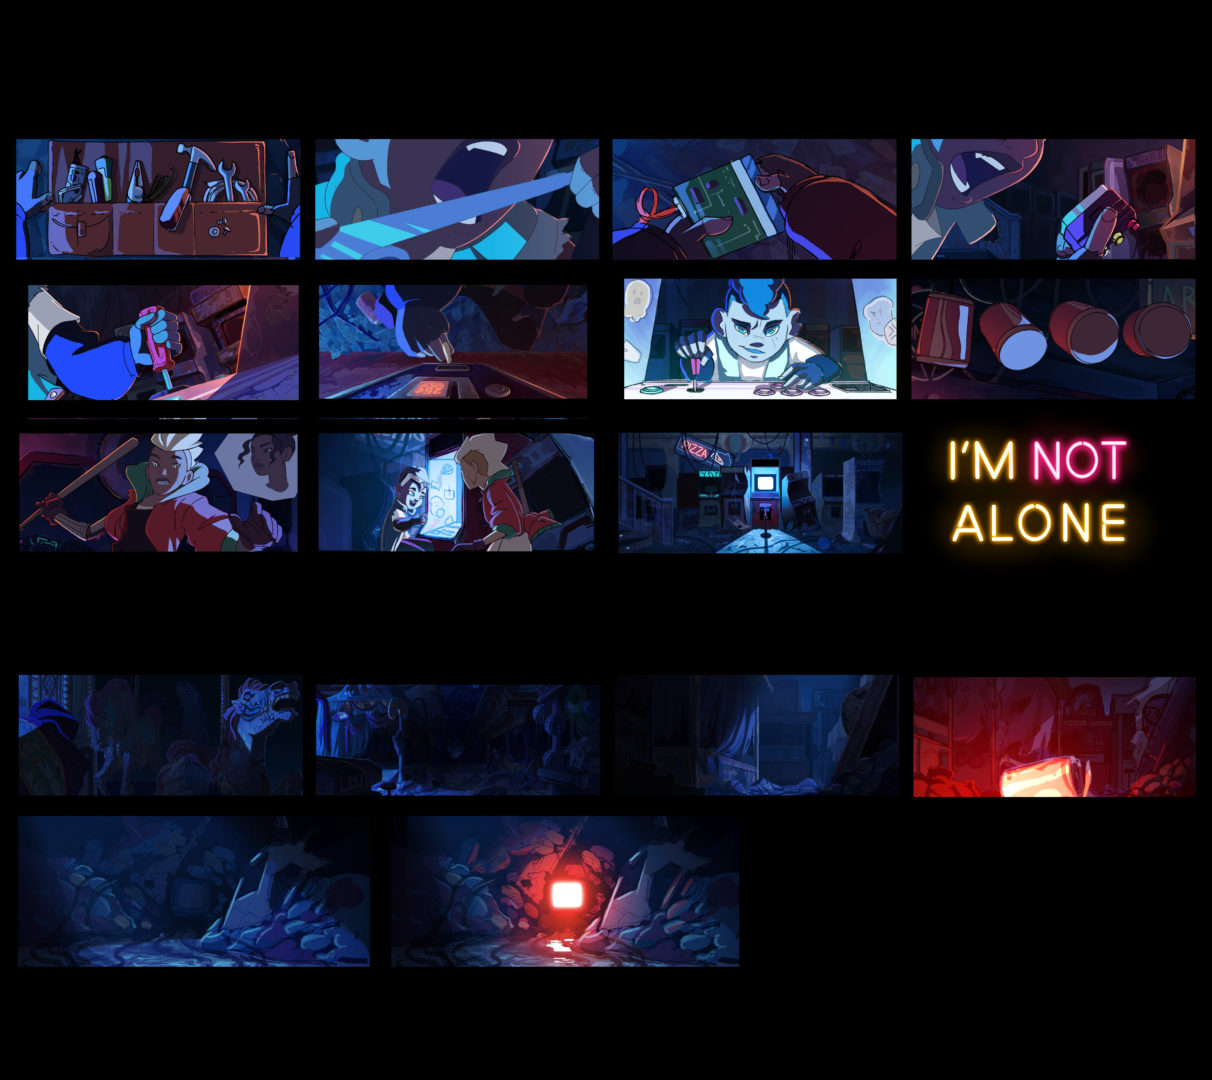 color script i'm not alone